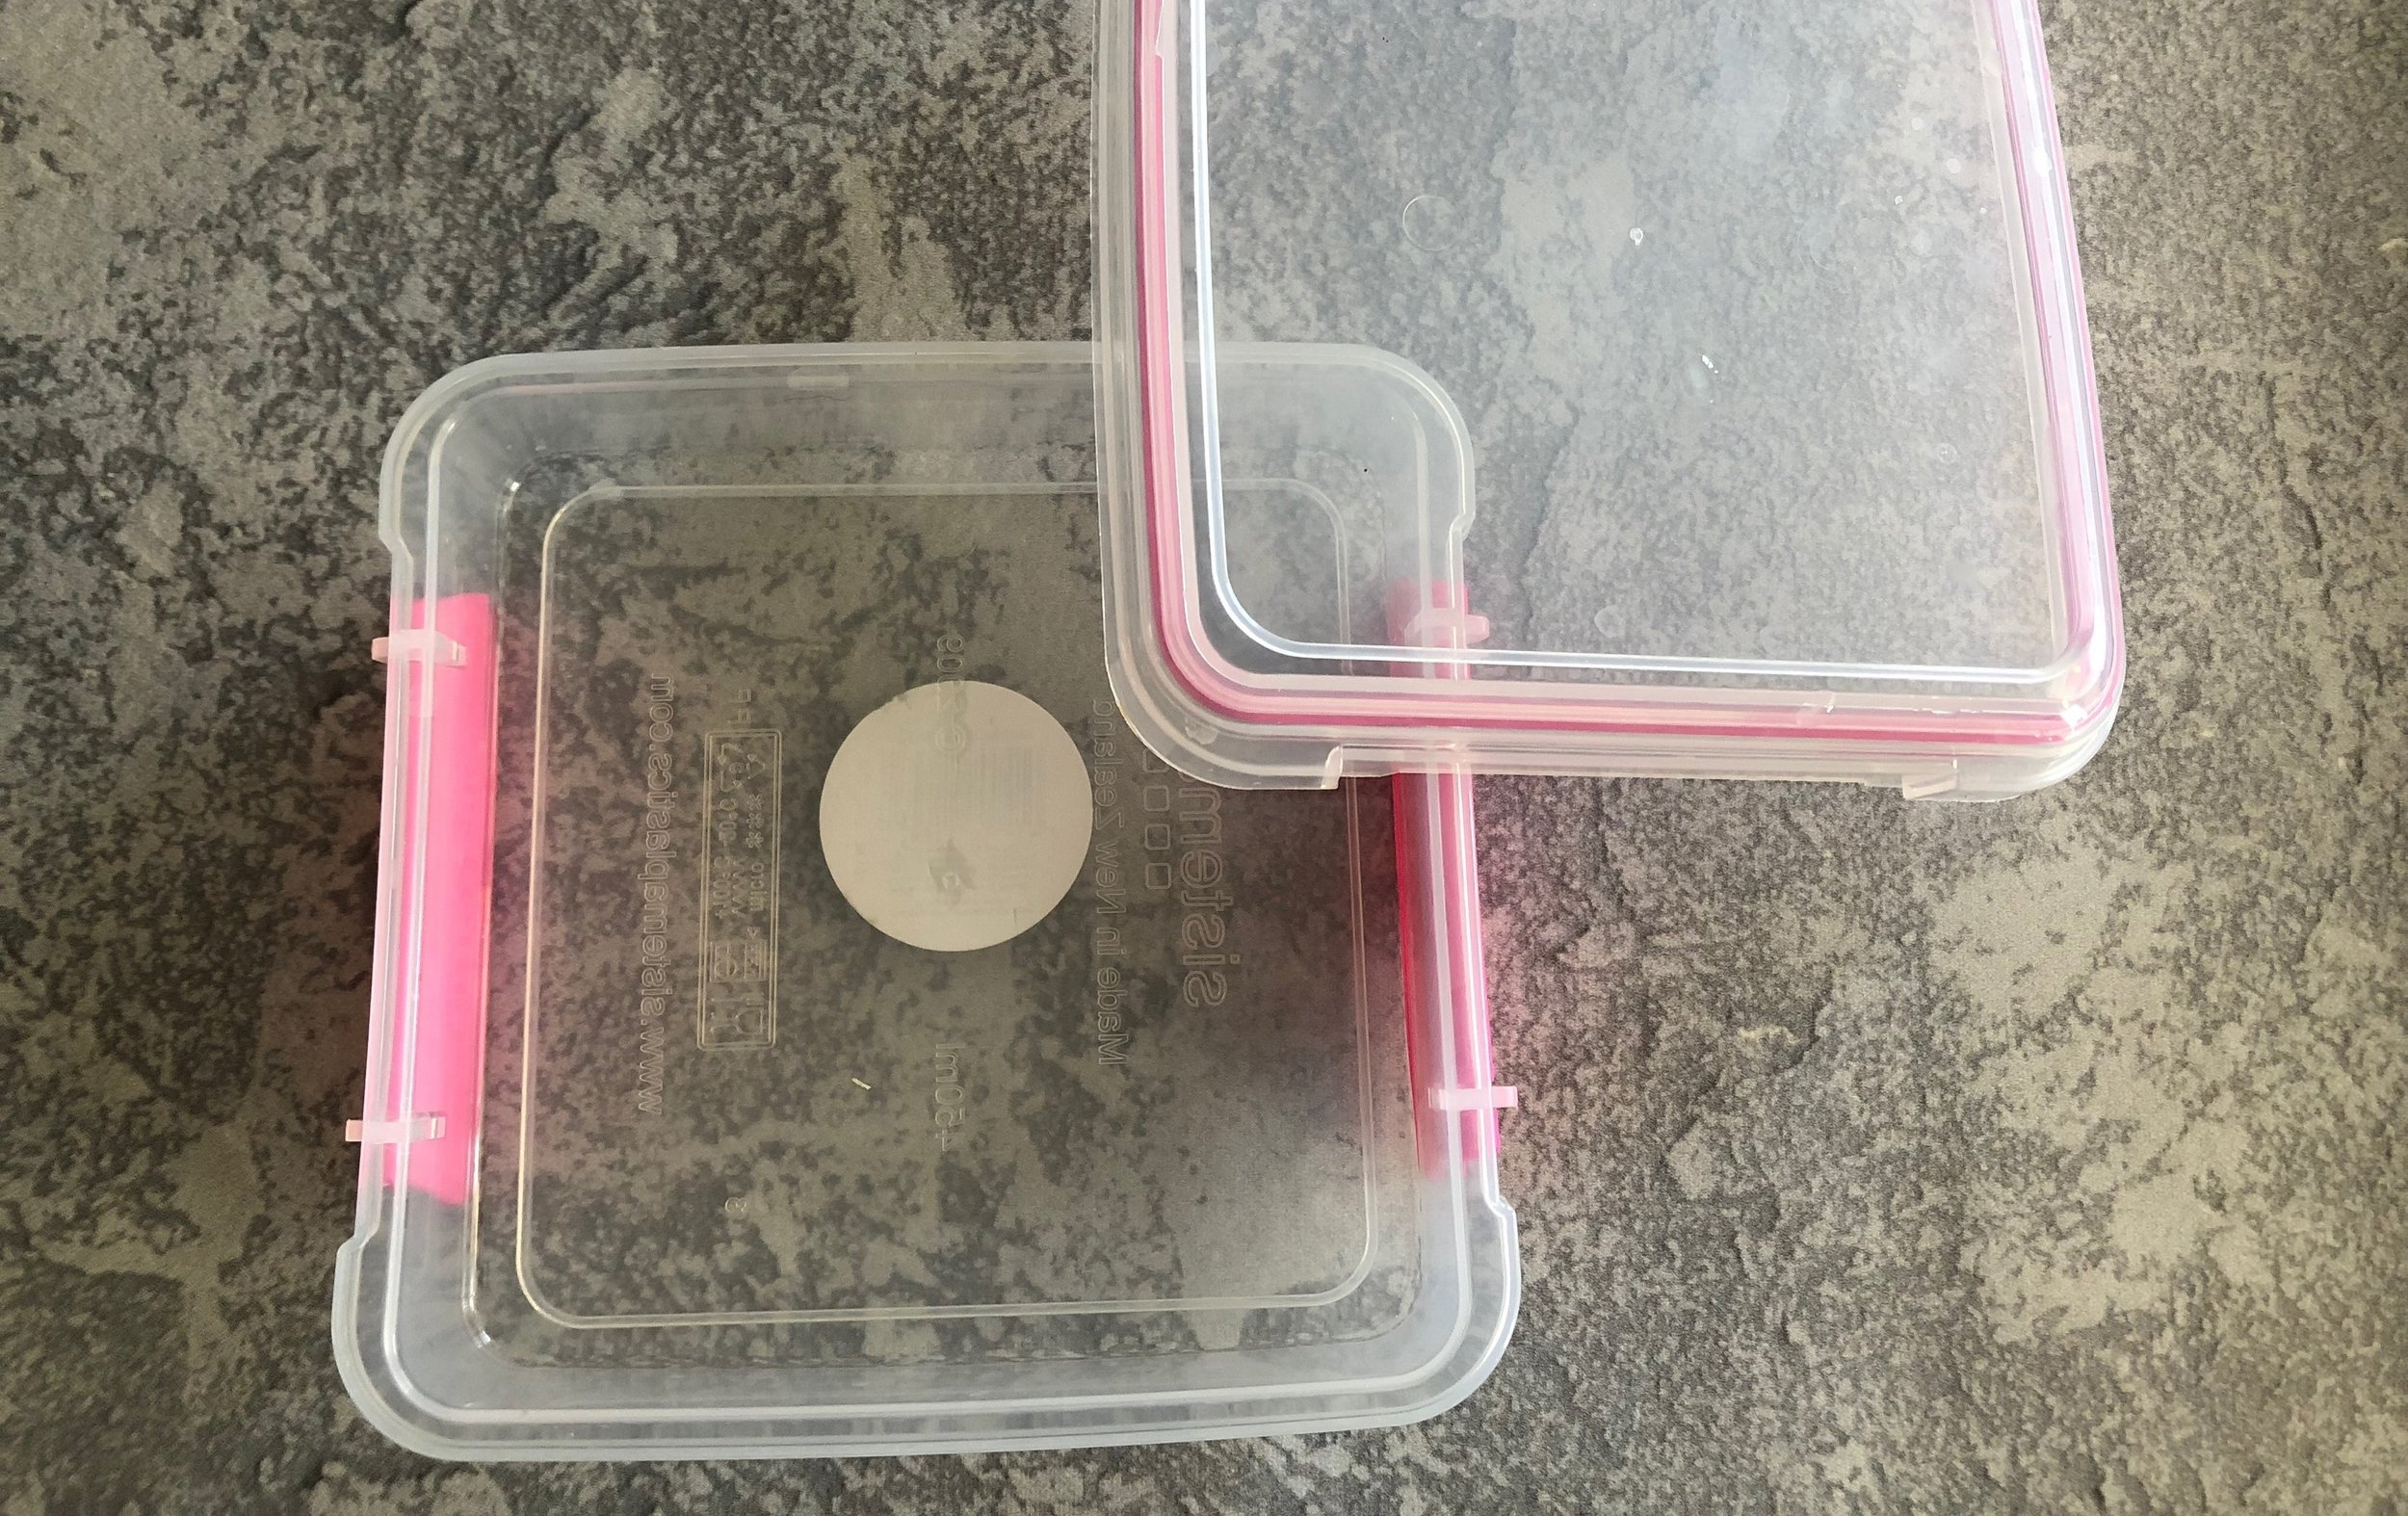 School lunch container sistema keto and low carb